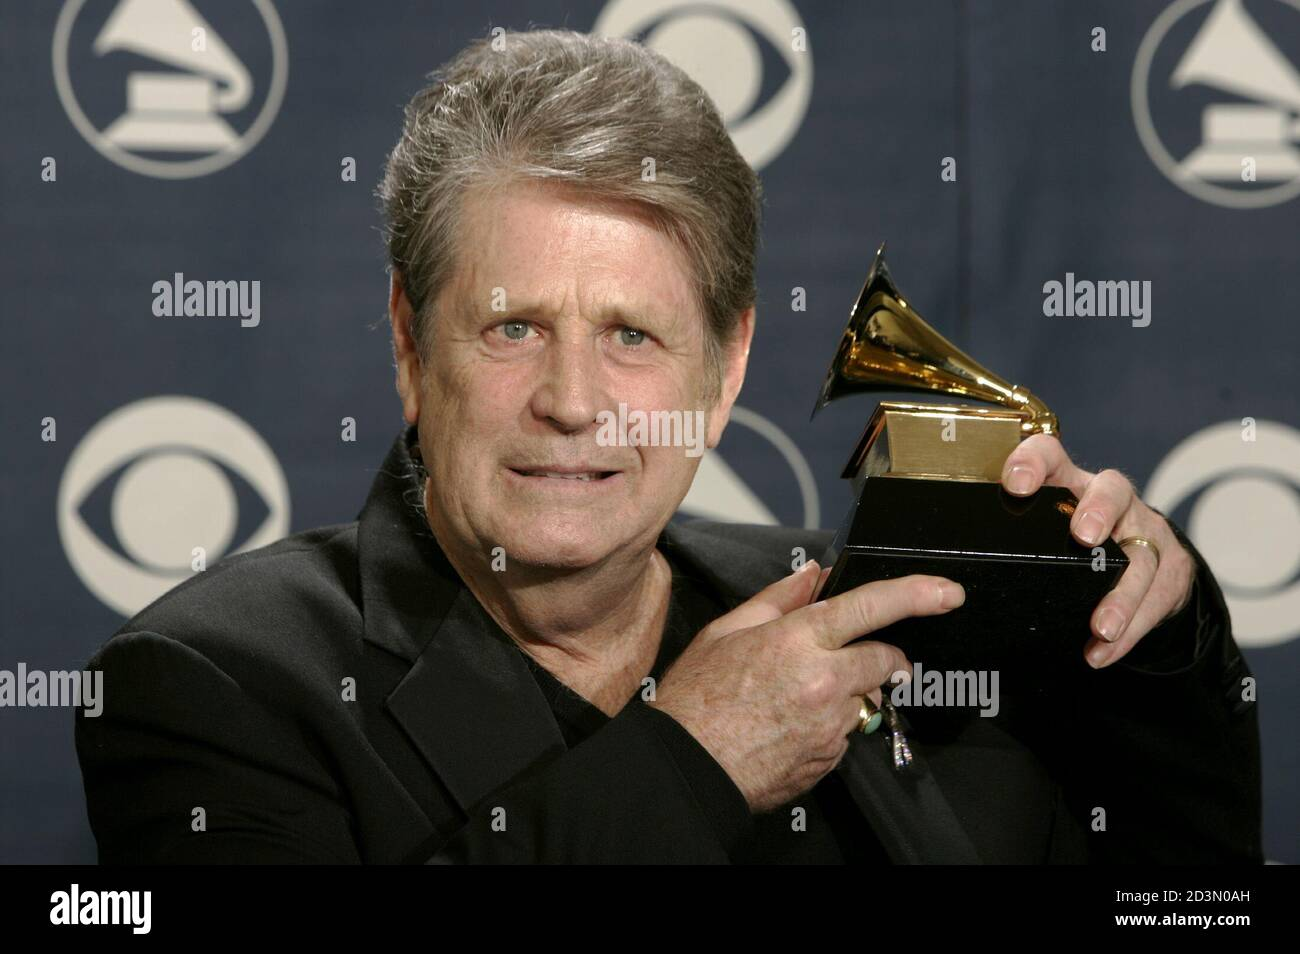 """Former Beach Boy Brian Wilson holds his award backstage at the 47th annual Grammy Awards at the Staples Center in Los Angeles February 13, 2005. Wilson won for Best Rock Instrumental Performance for """"Mrs. O'Leary's Cow. Stock Photo"""